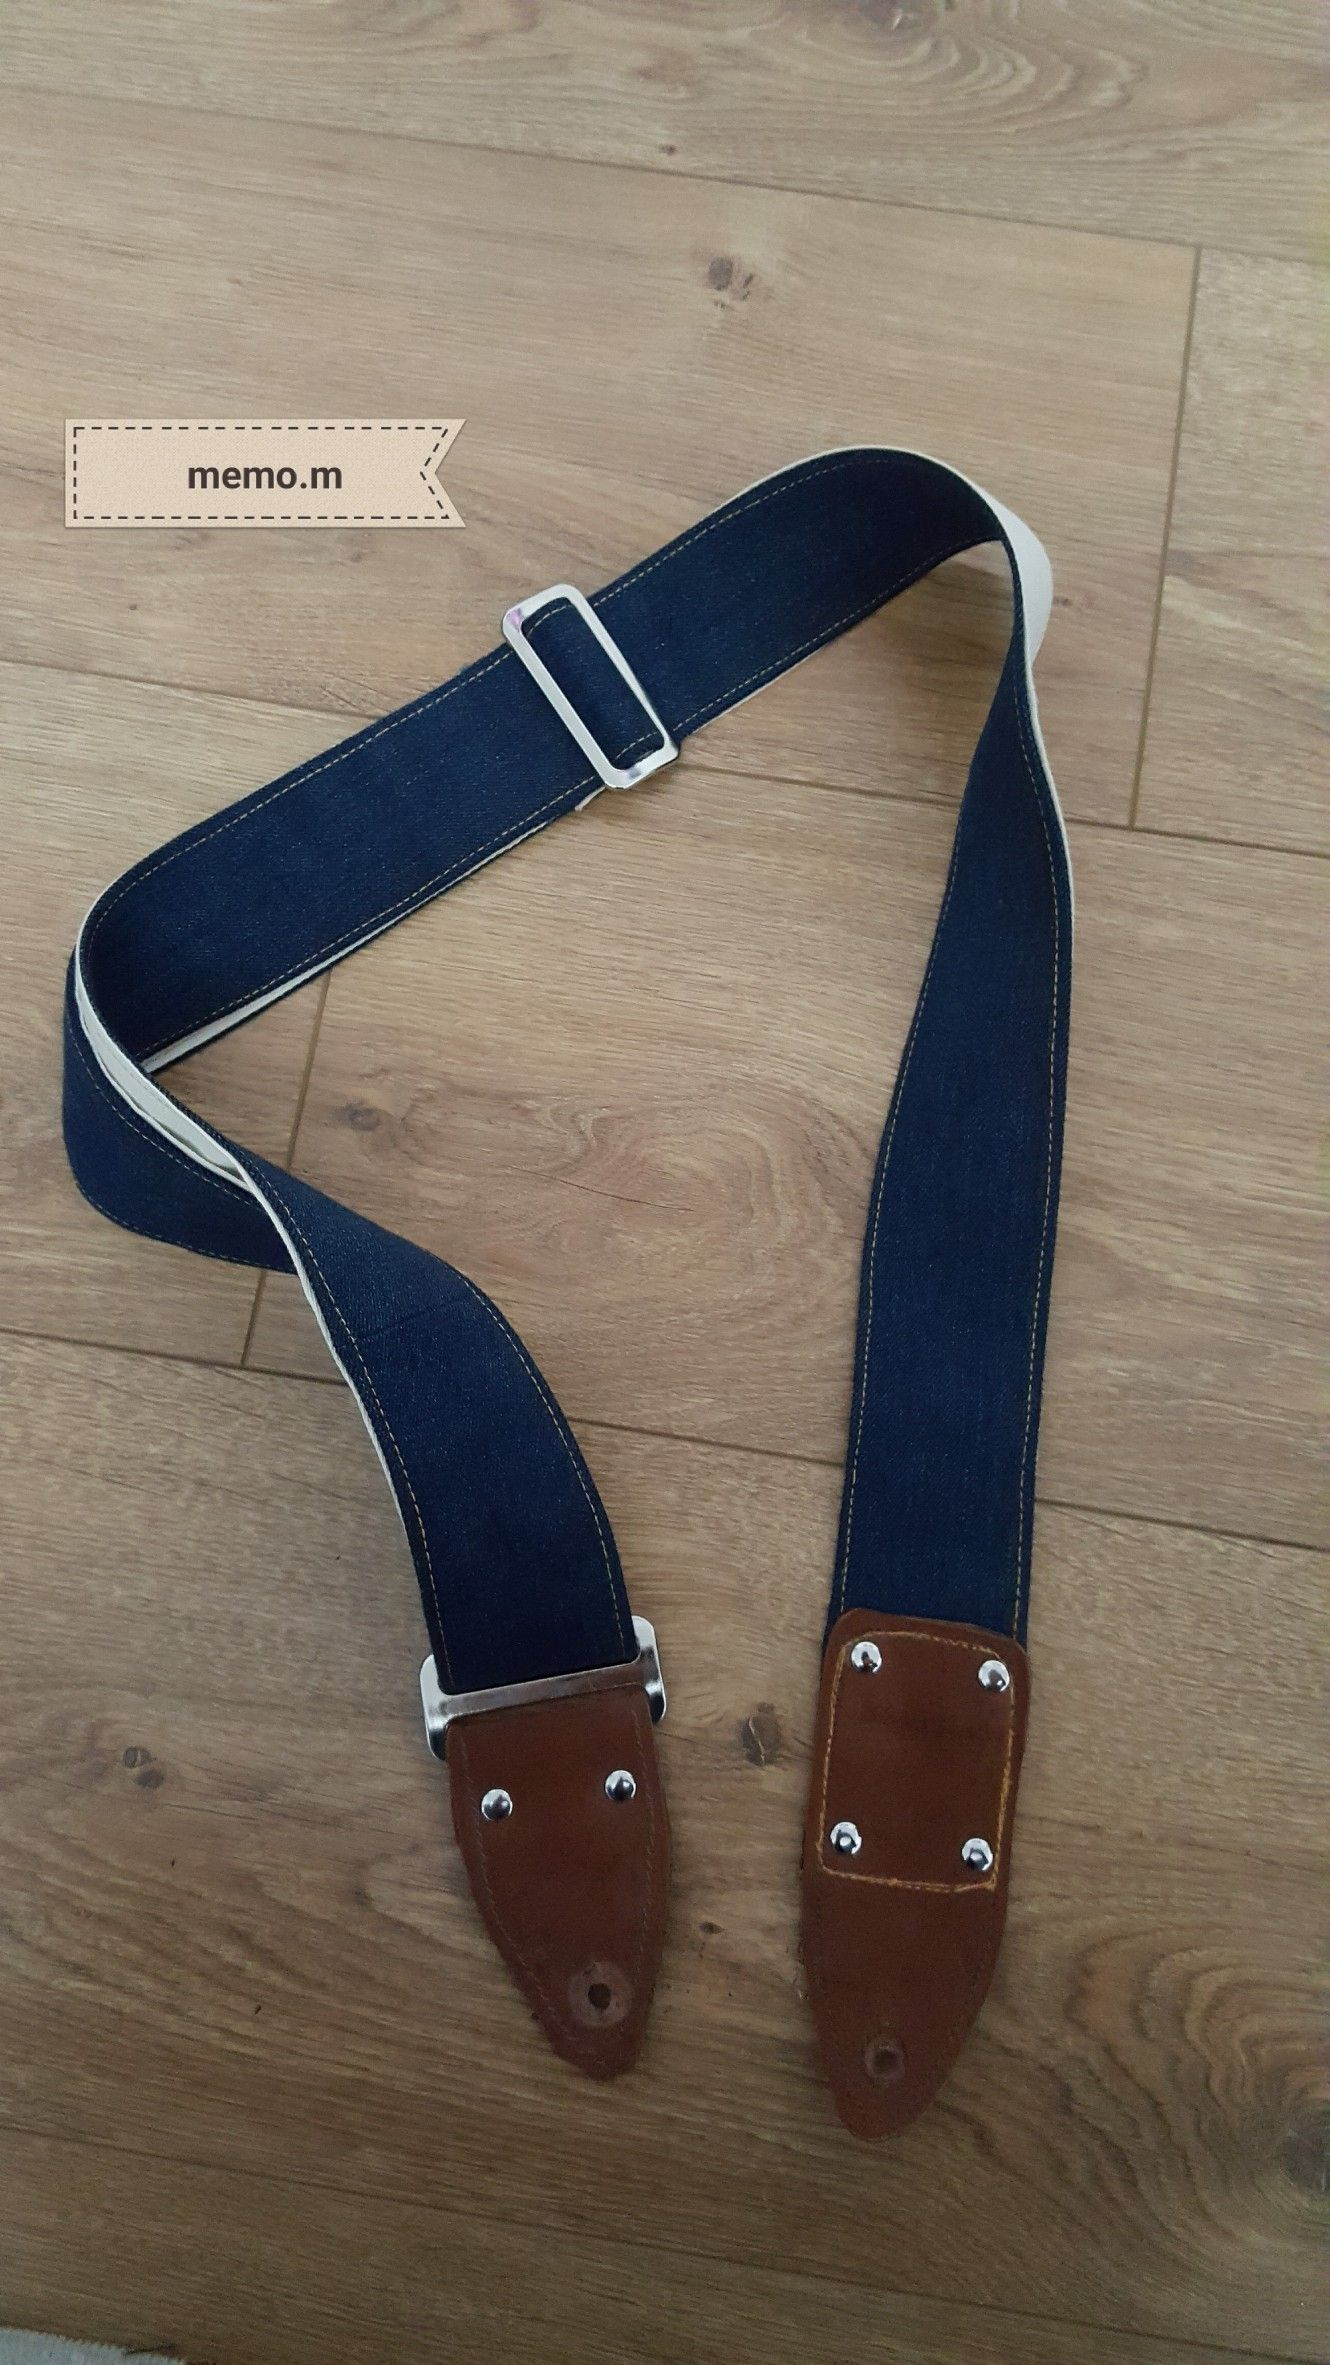 diy denim guitar strap made by memo.m | guitar stuf | pinterest | guitar